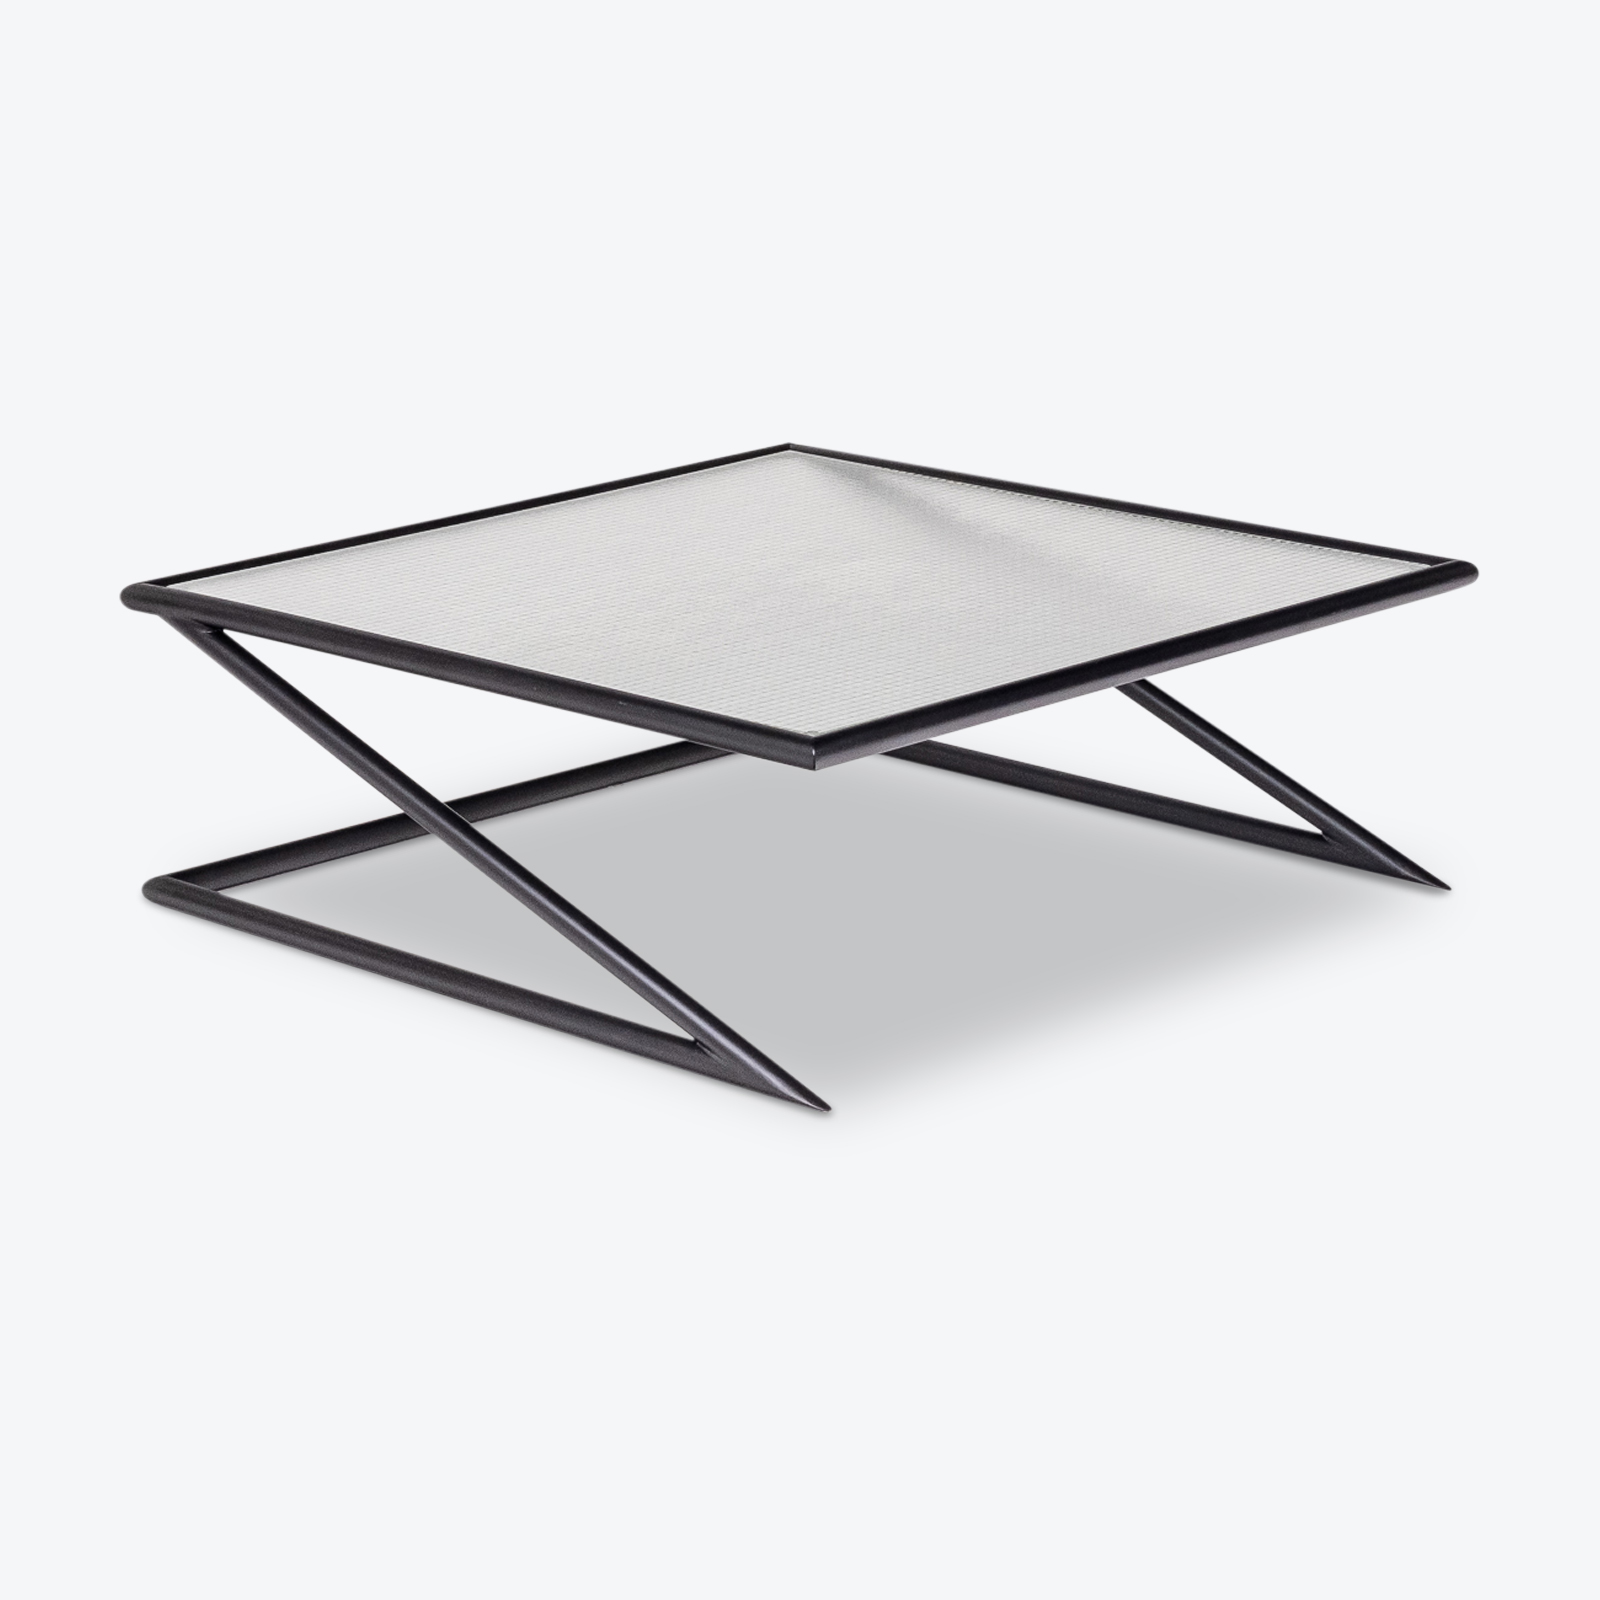 'z' Coffee Table By Harvink, 1980s, The Netherlands Hero